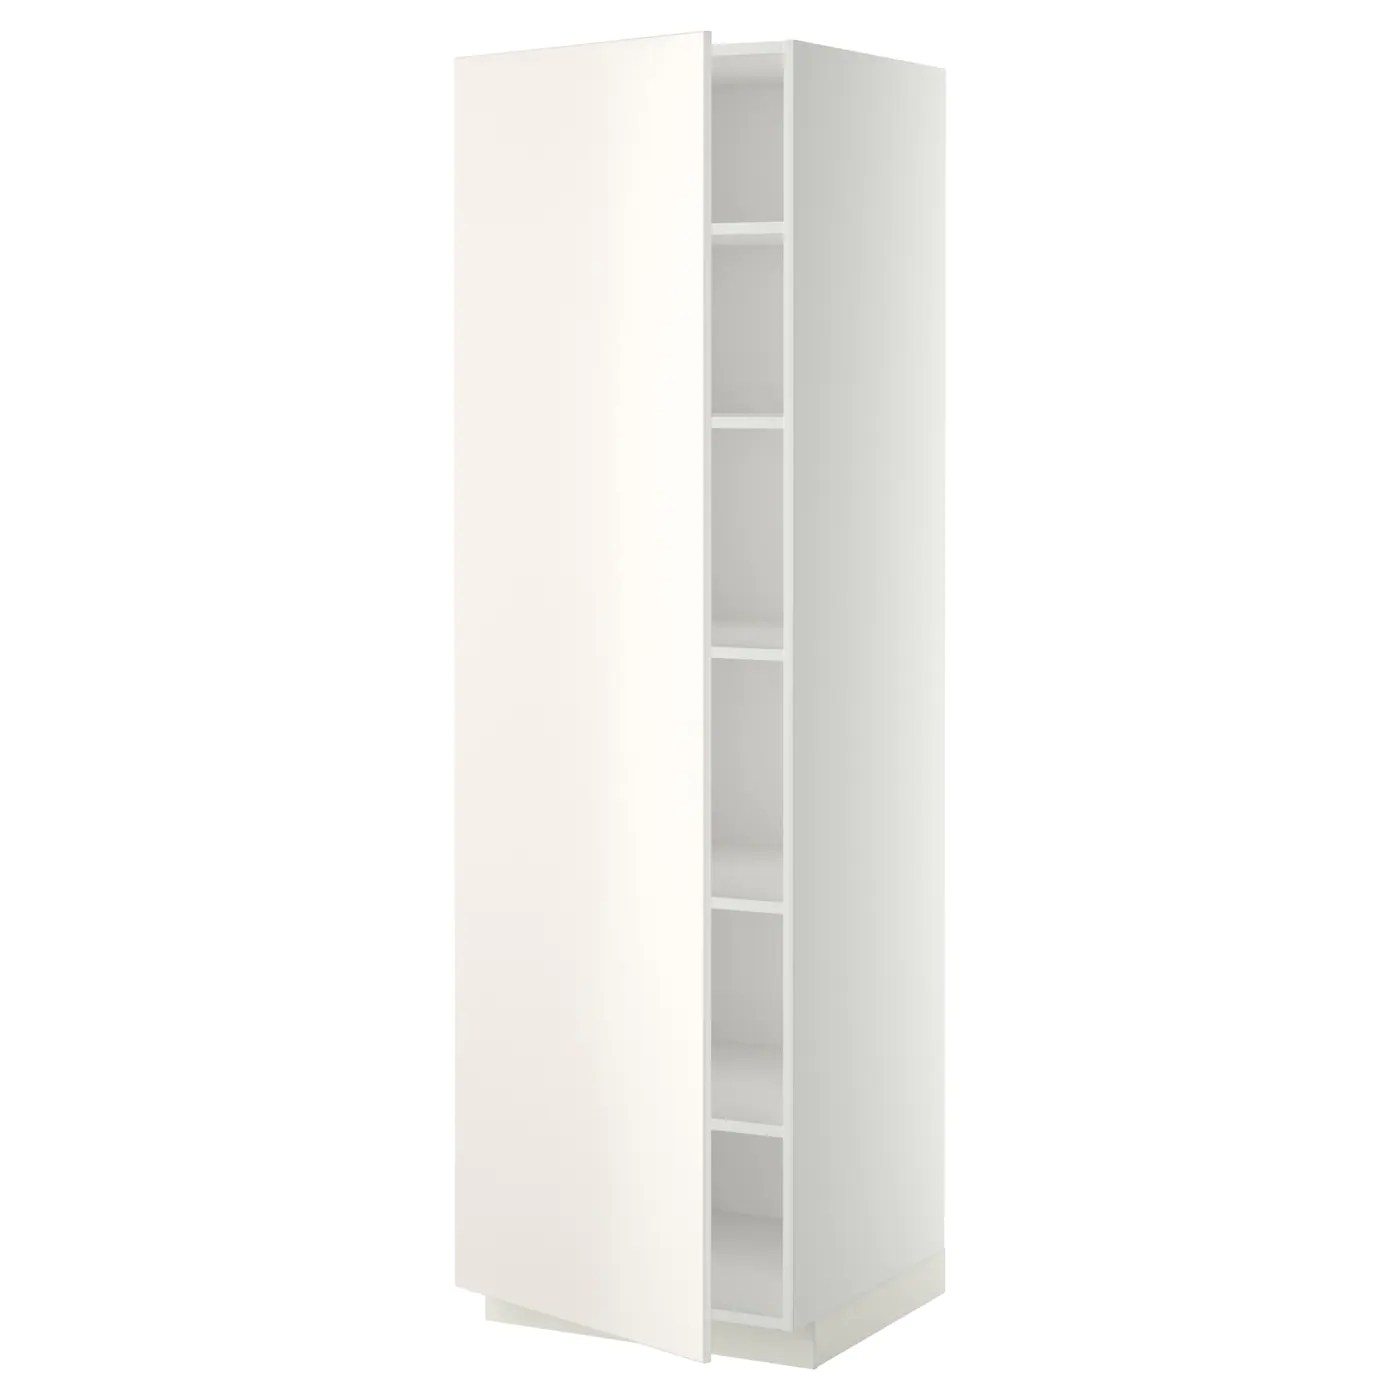 Apothekerschrank Ausziehschrank Küche Metod High Cabinet With Shelves White Veddinge White 60 X